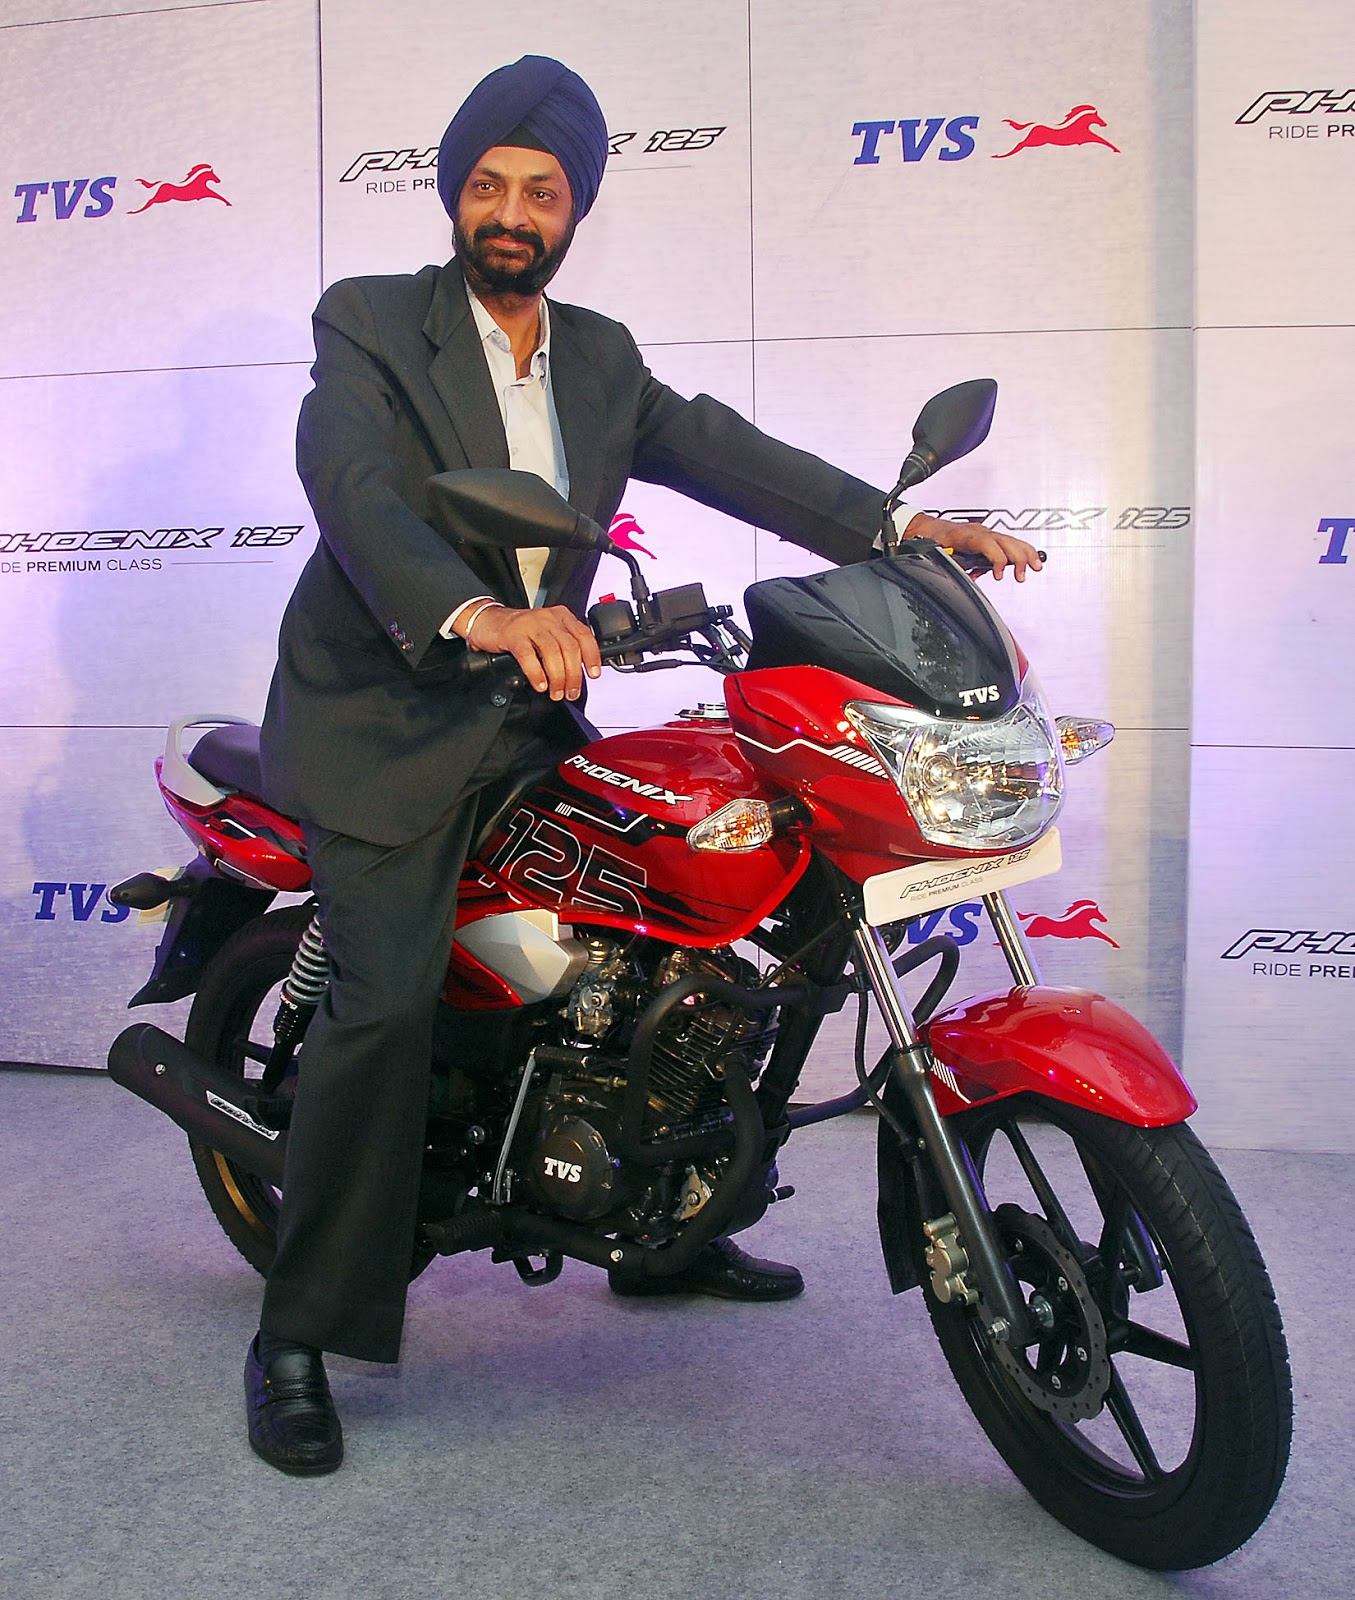 Tvs motor company launched its premium executive deluxe 125cc motorcycle tvs phoenix 125 here today dubbed by the company to be one of the most